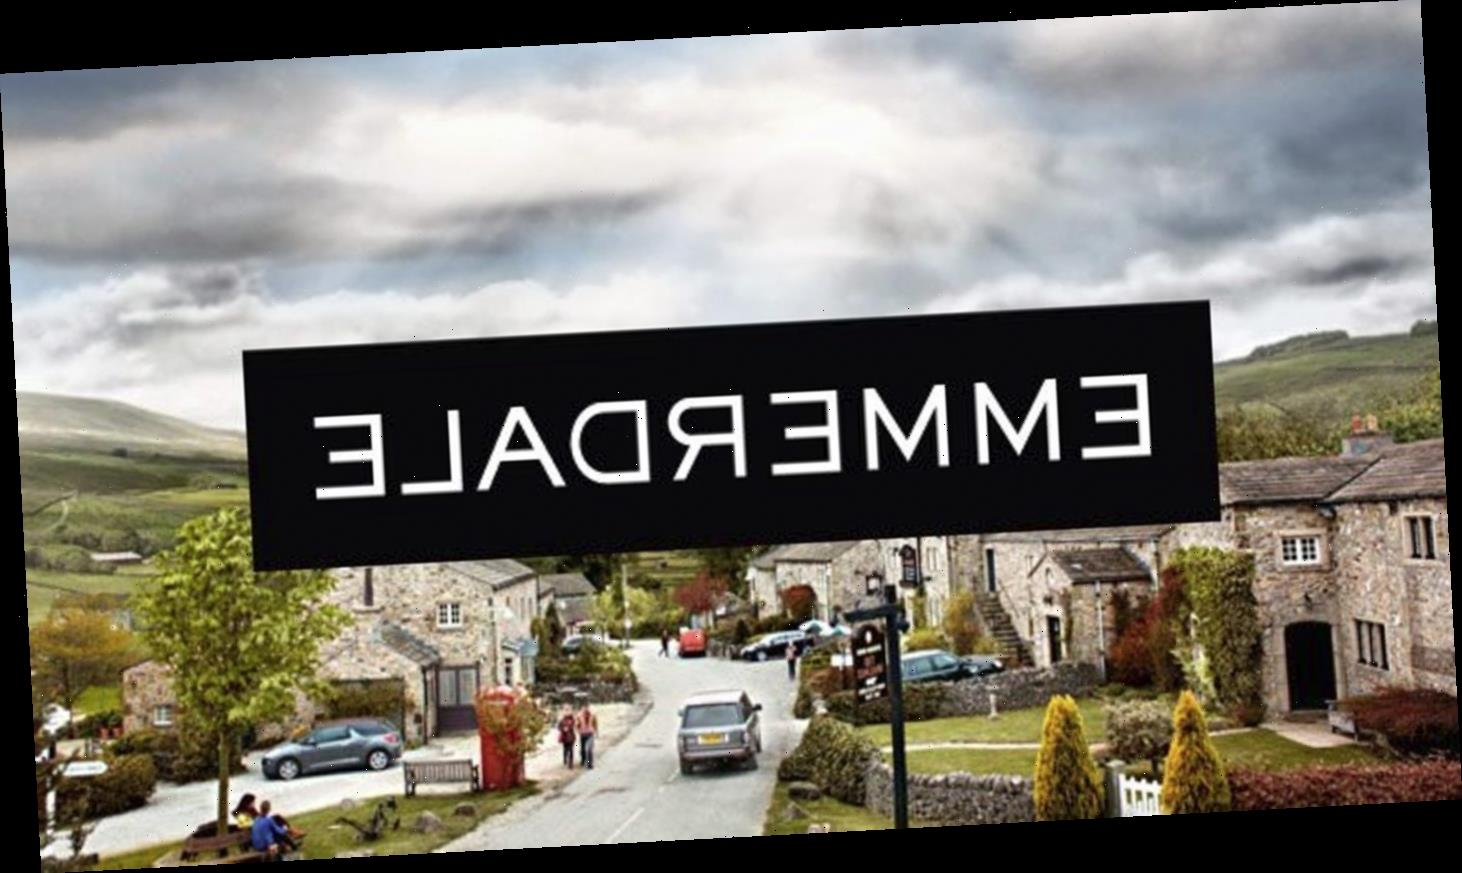 Emmerdale cancelled – ITV's scheduling changes this week explained